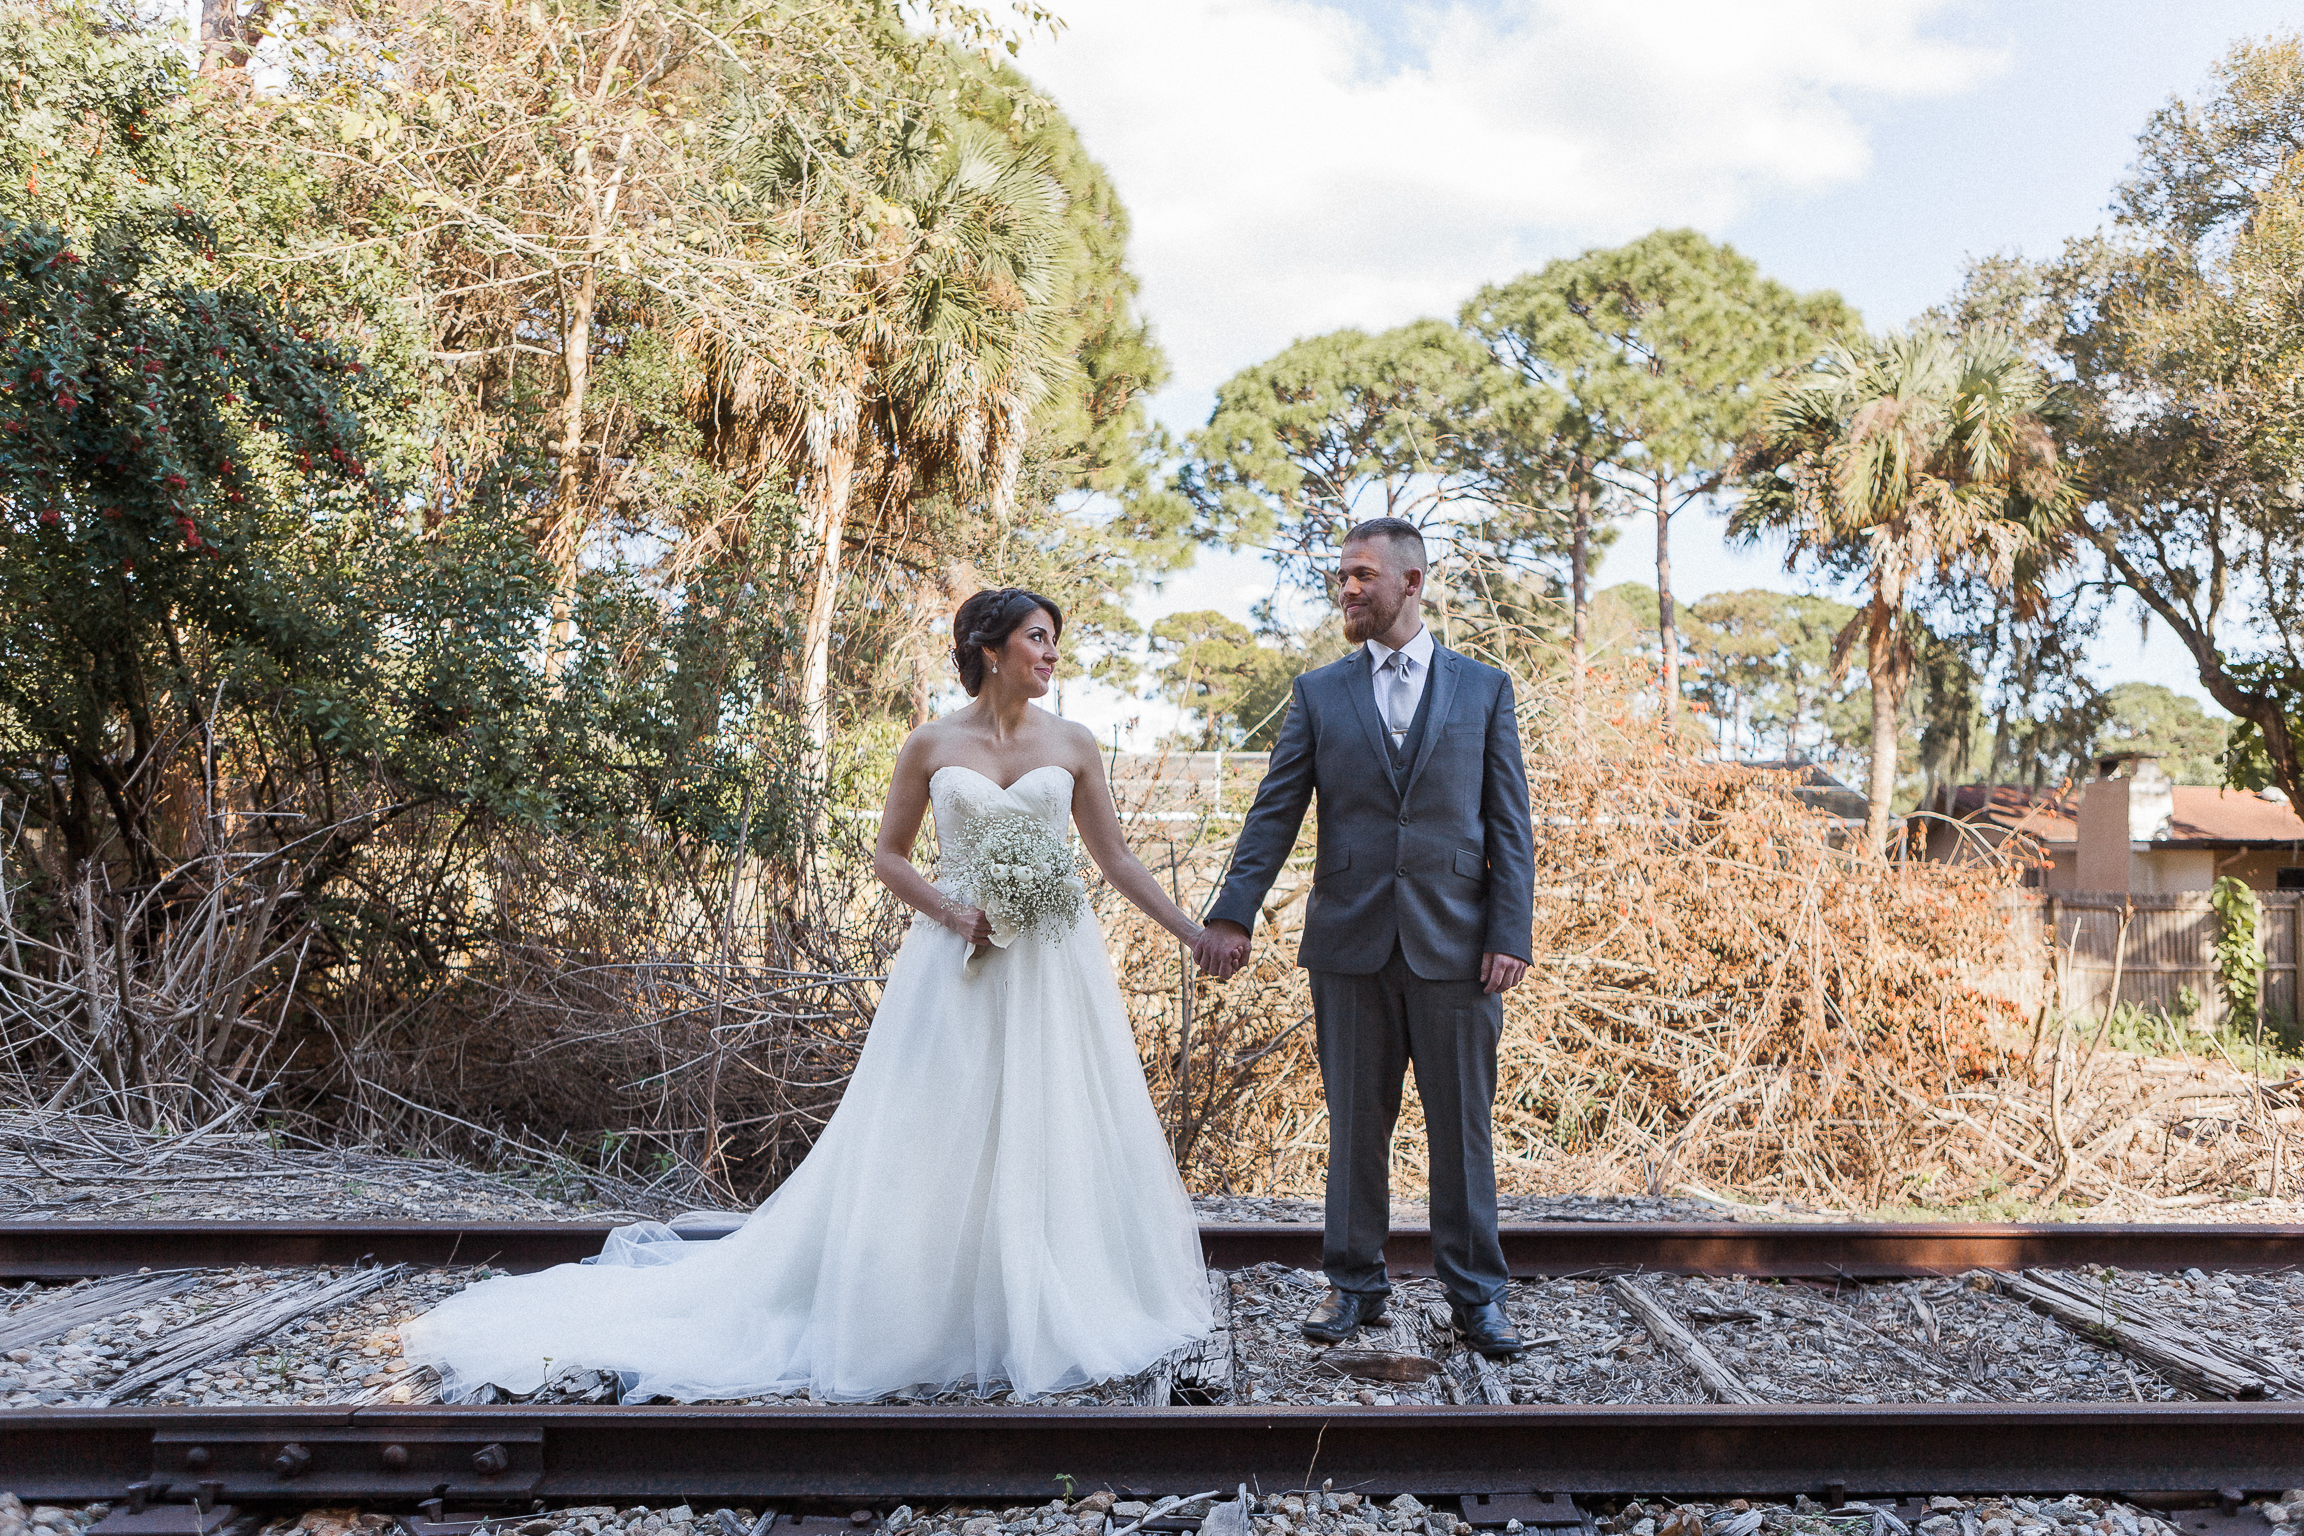 20150117_Jessica and Chris Wedding_ © Madison Greer Photography_0002.jpg